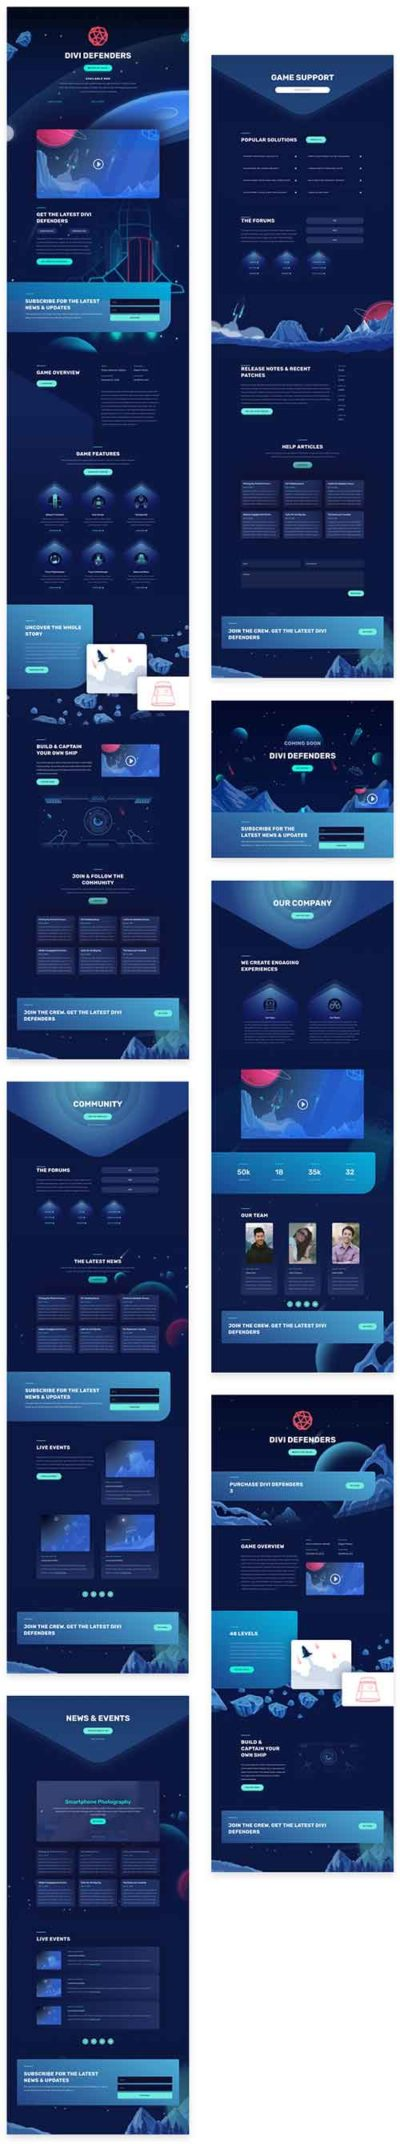 video game divi layout